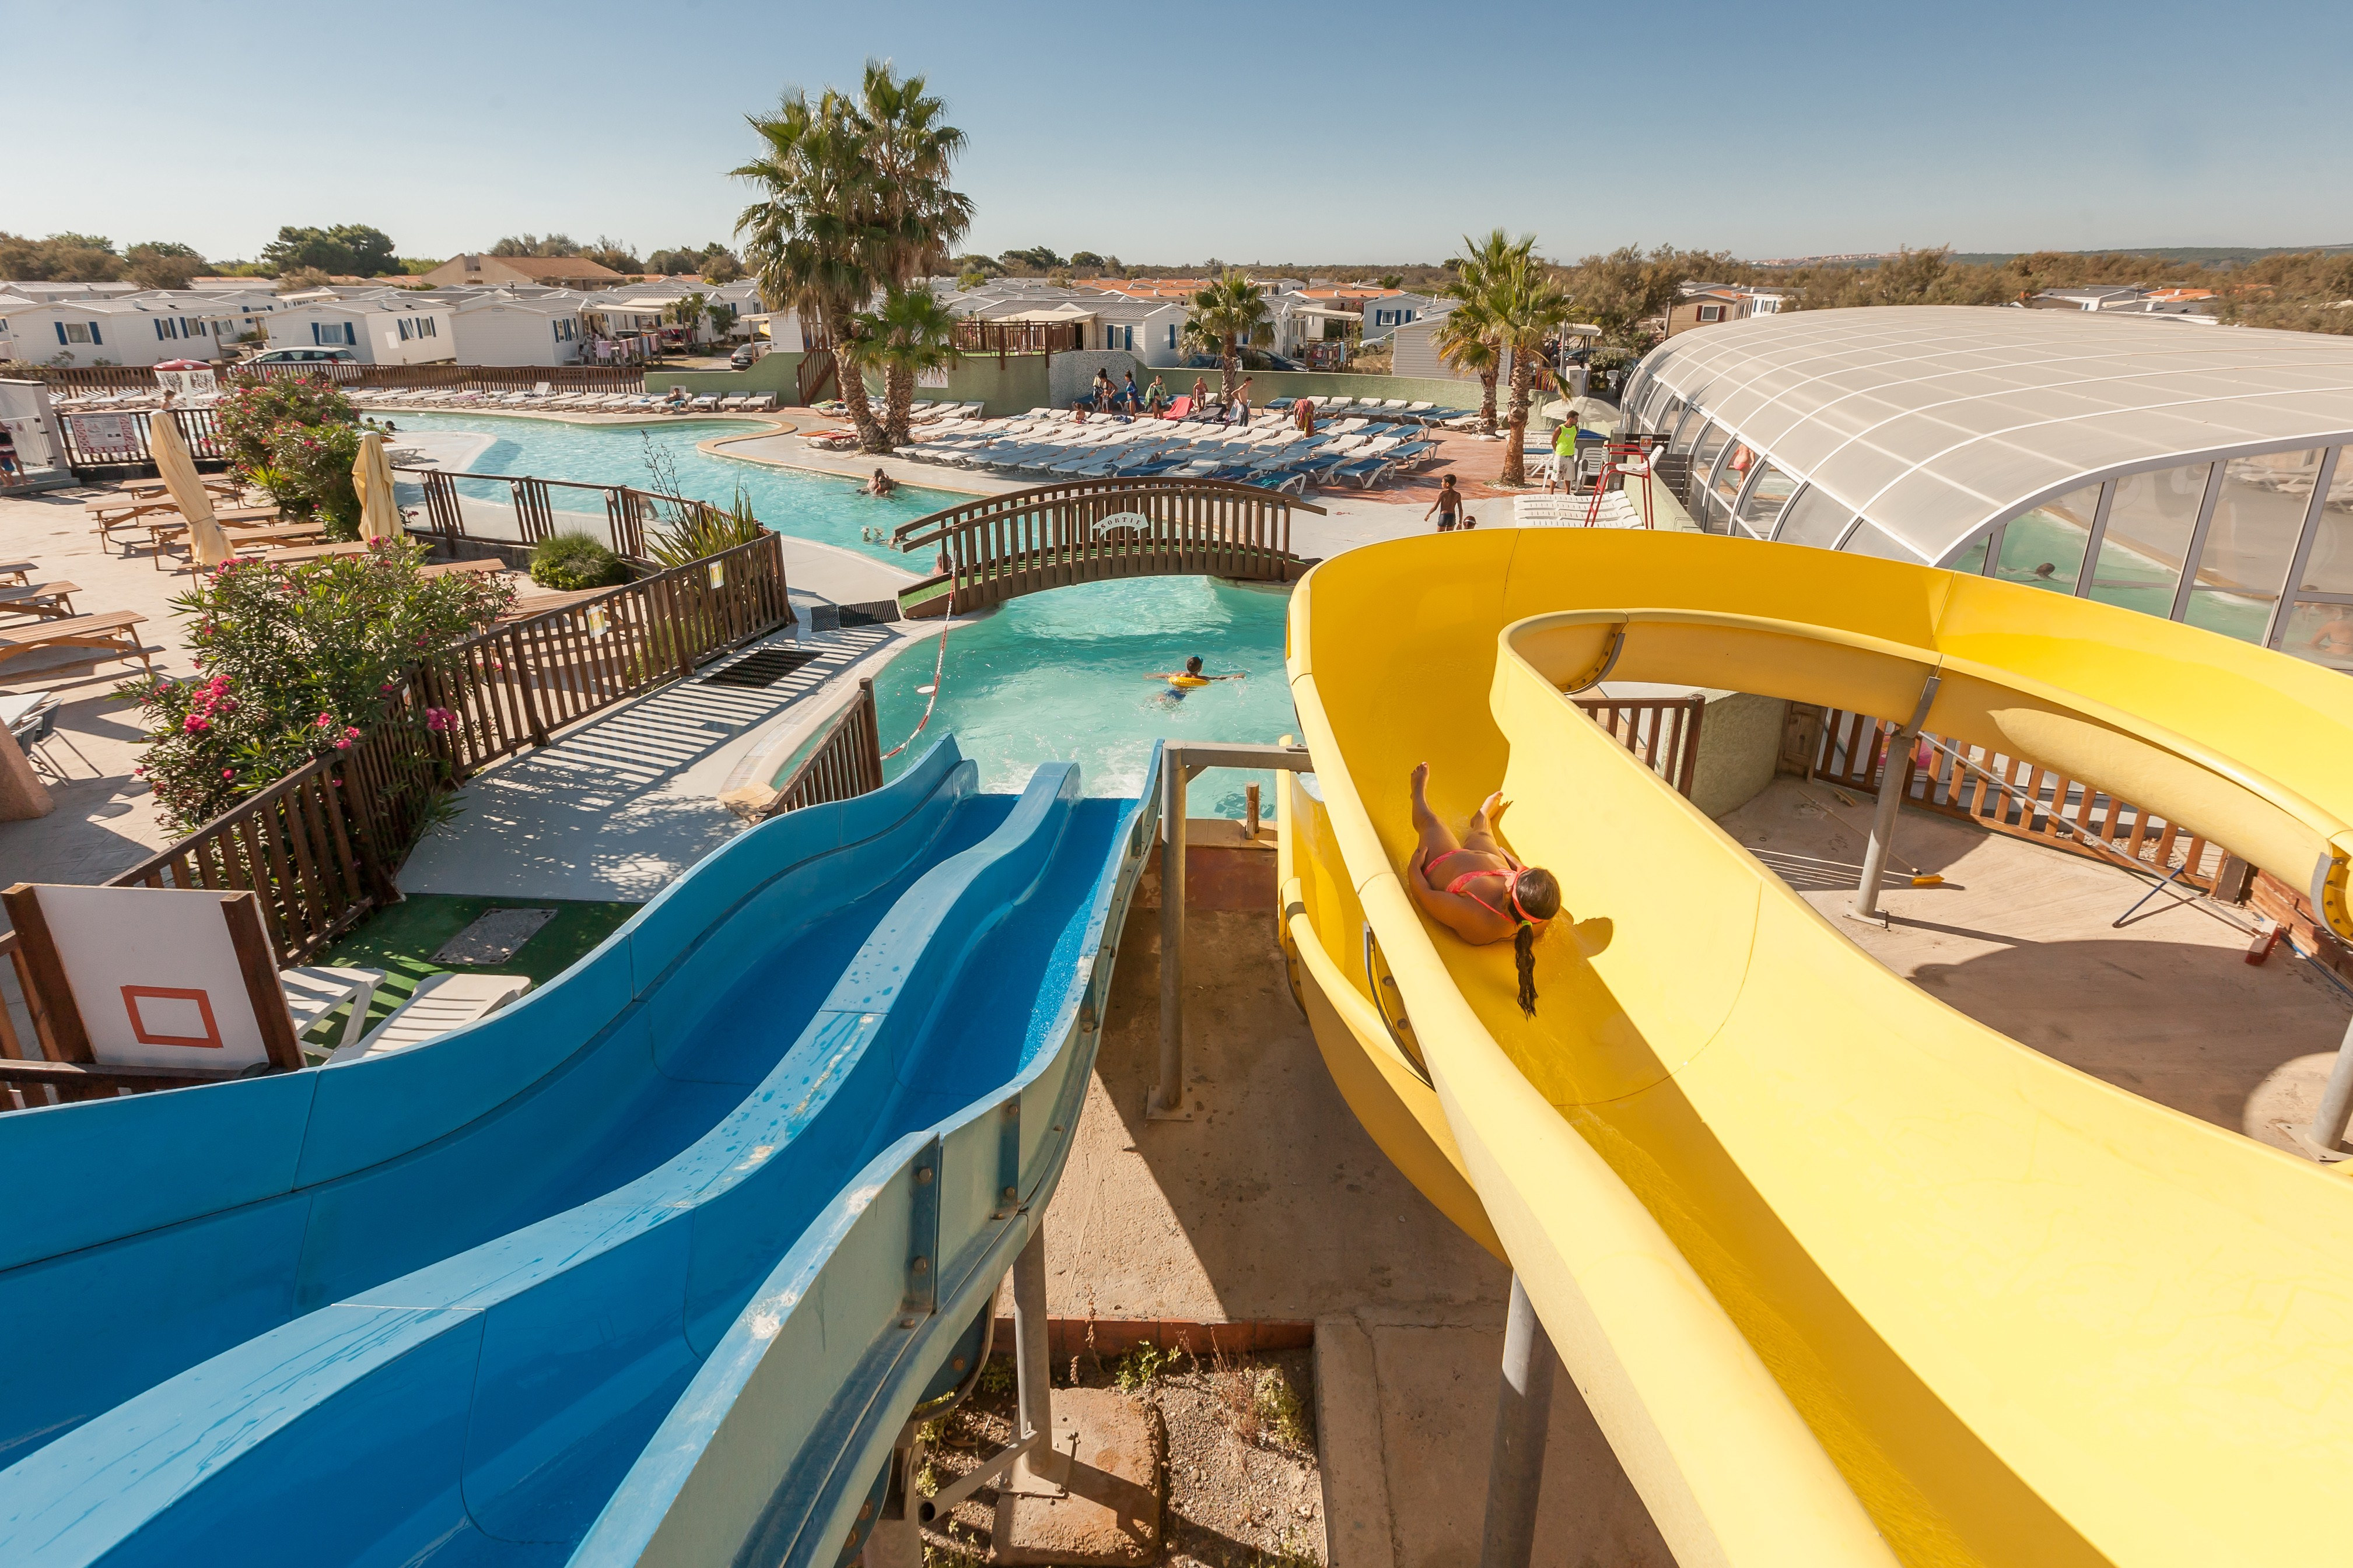 Camping 3 cottage village aux hamacs - Camping cottage village aux hamacs a fleury ...